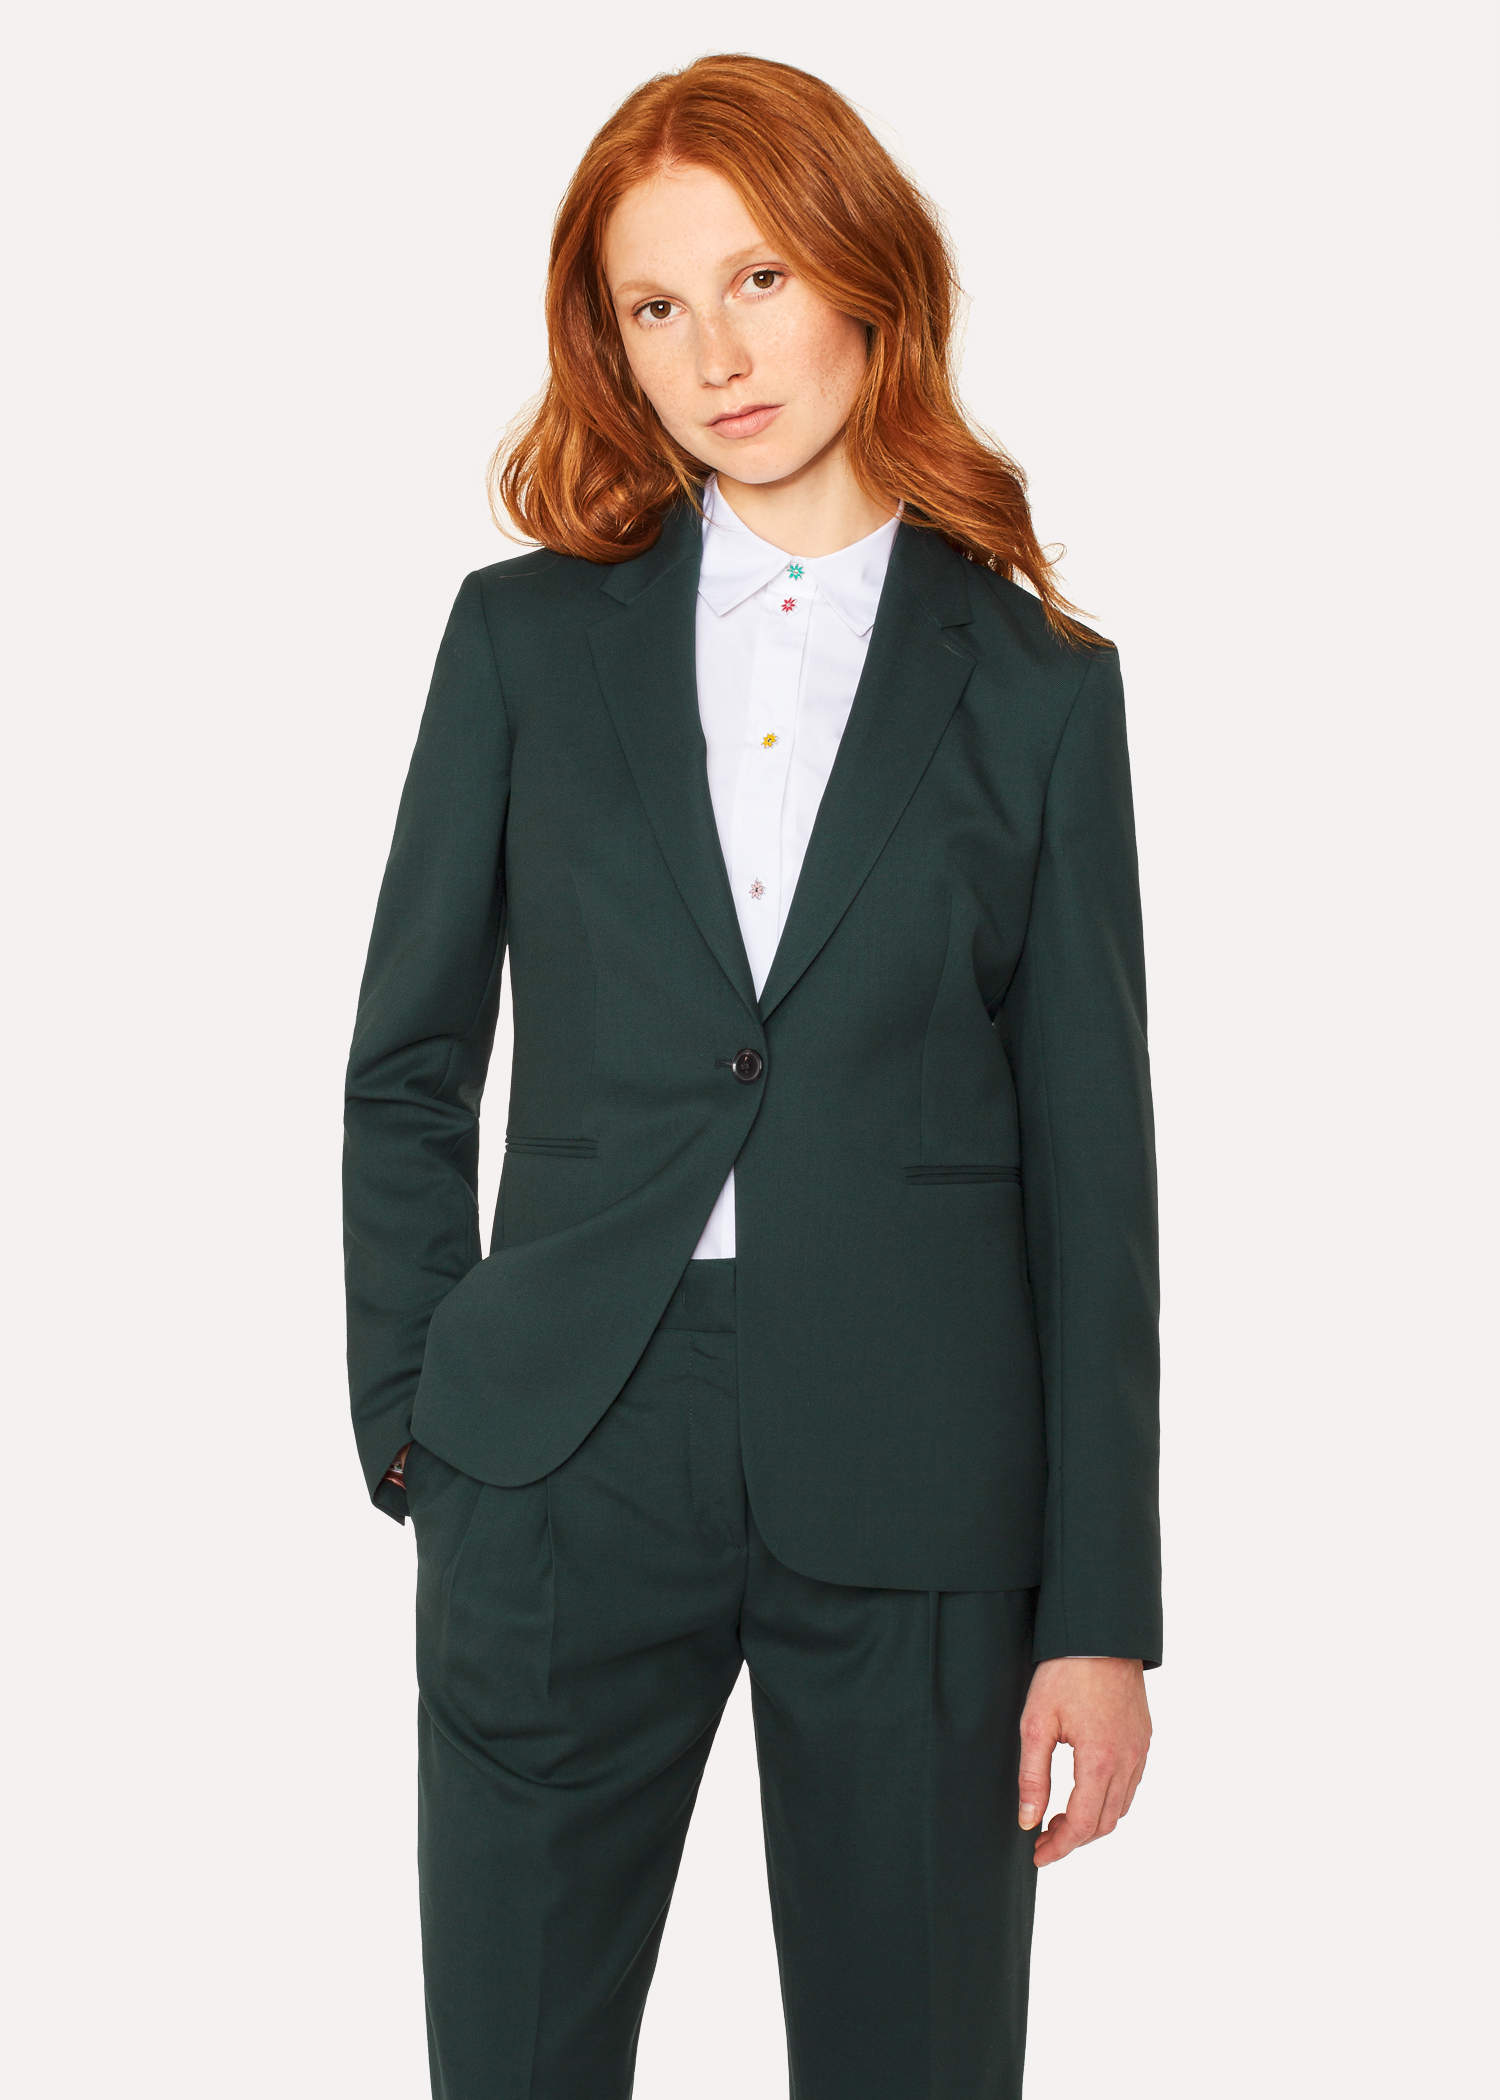 A Suit To Travel In - Women s Dark Green One-Button Wool Blazer Paul Smith bacd88a164705